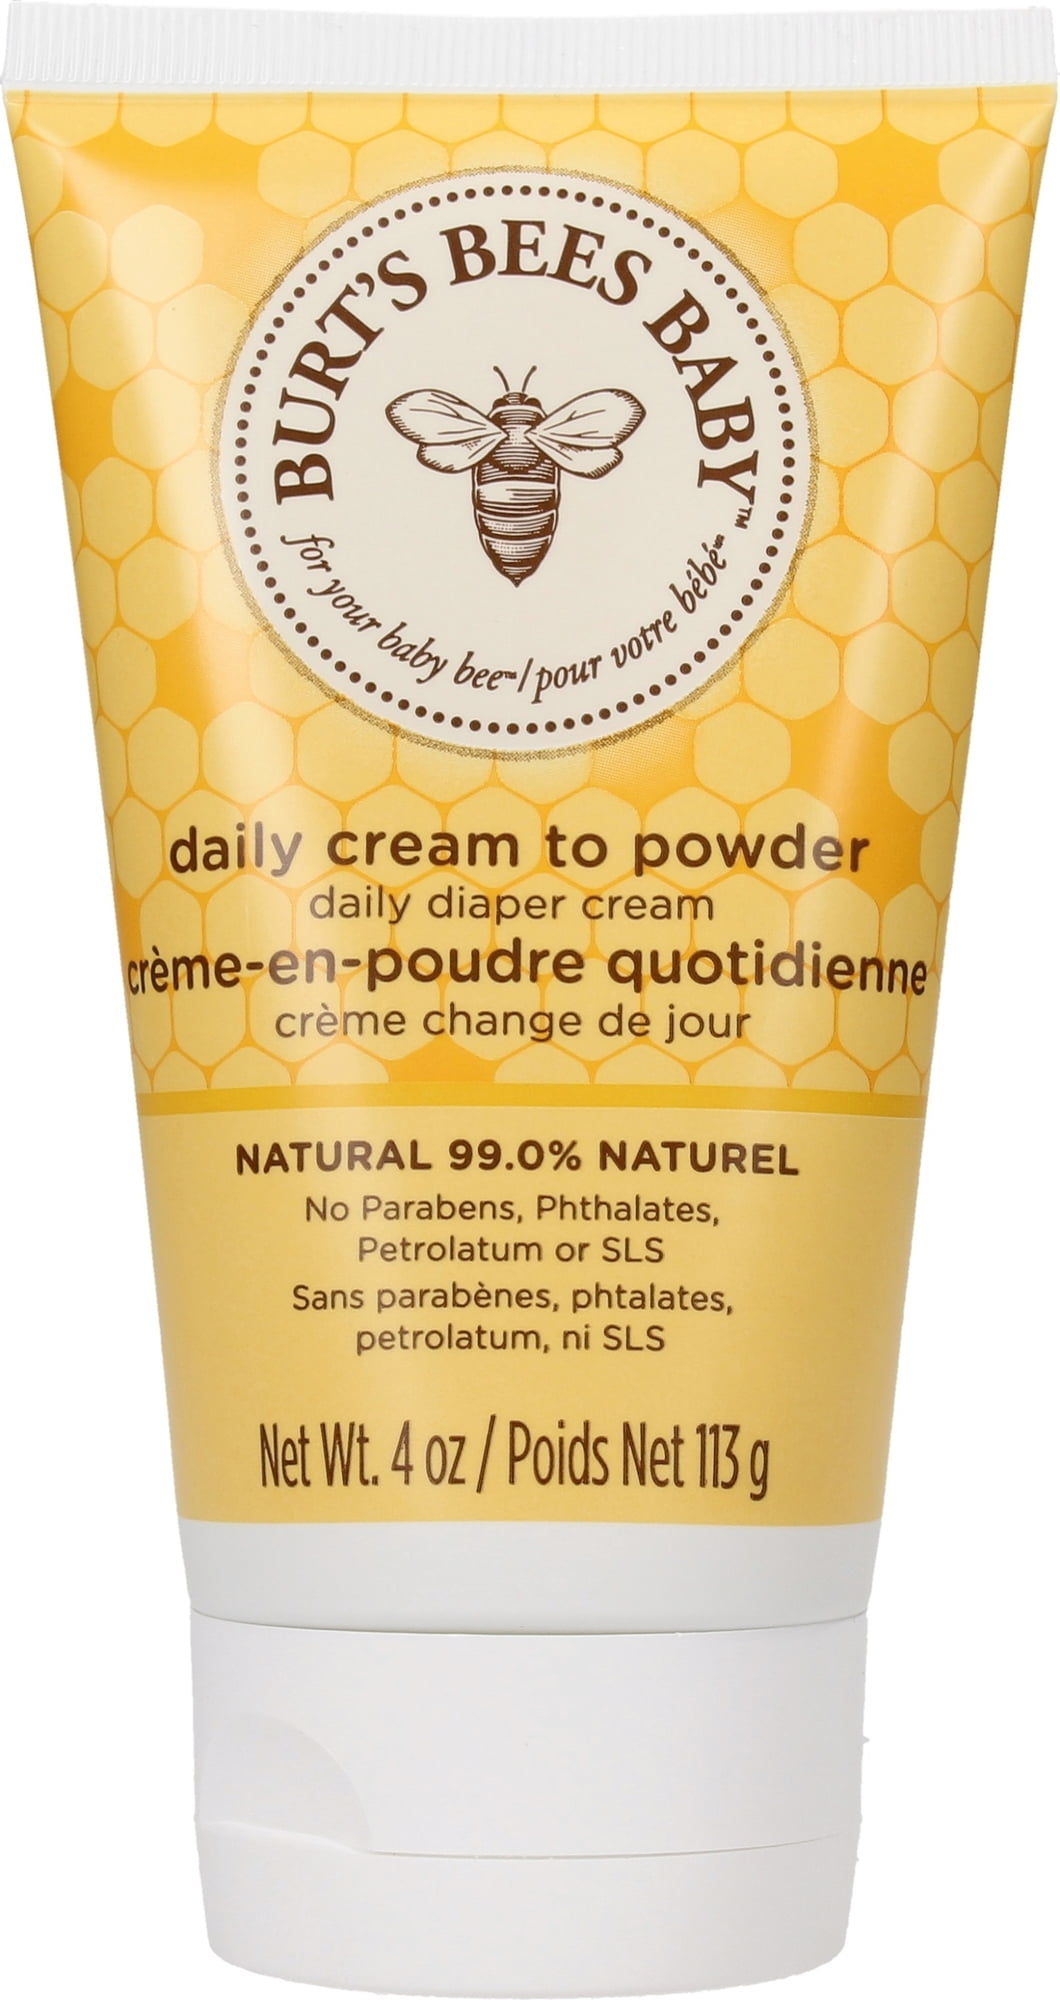 Burt's Bees Baby Bee 2in1 Diaper Cream & Baby Powder - 110 g von Burt's Bees